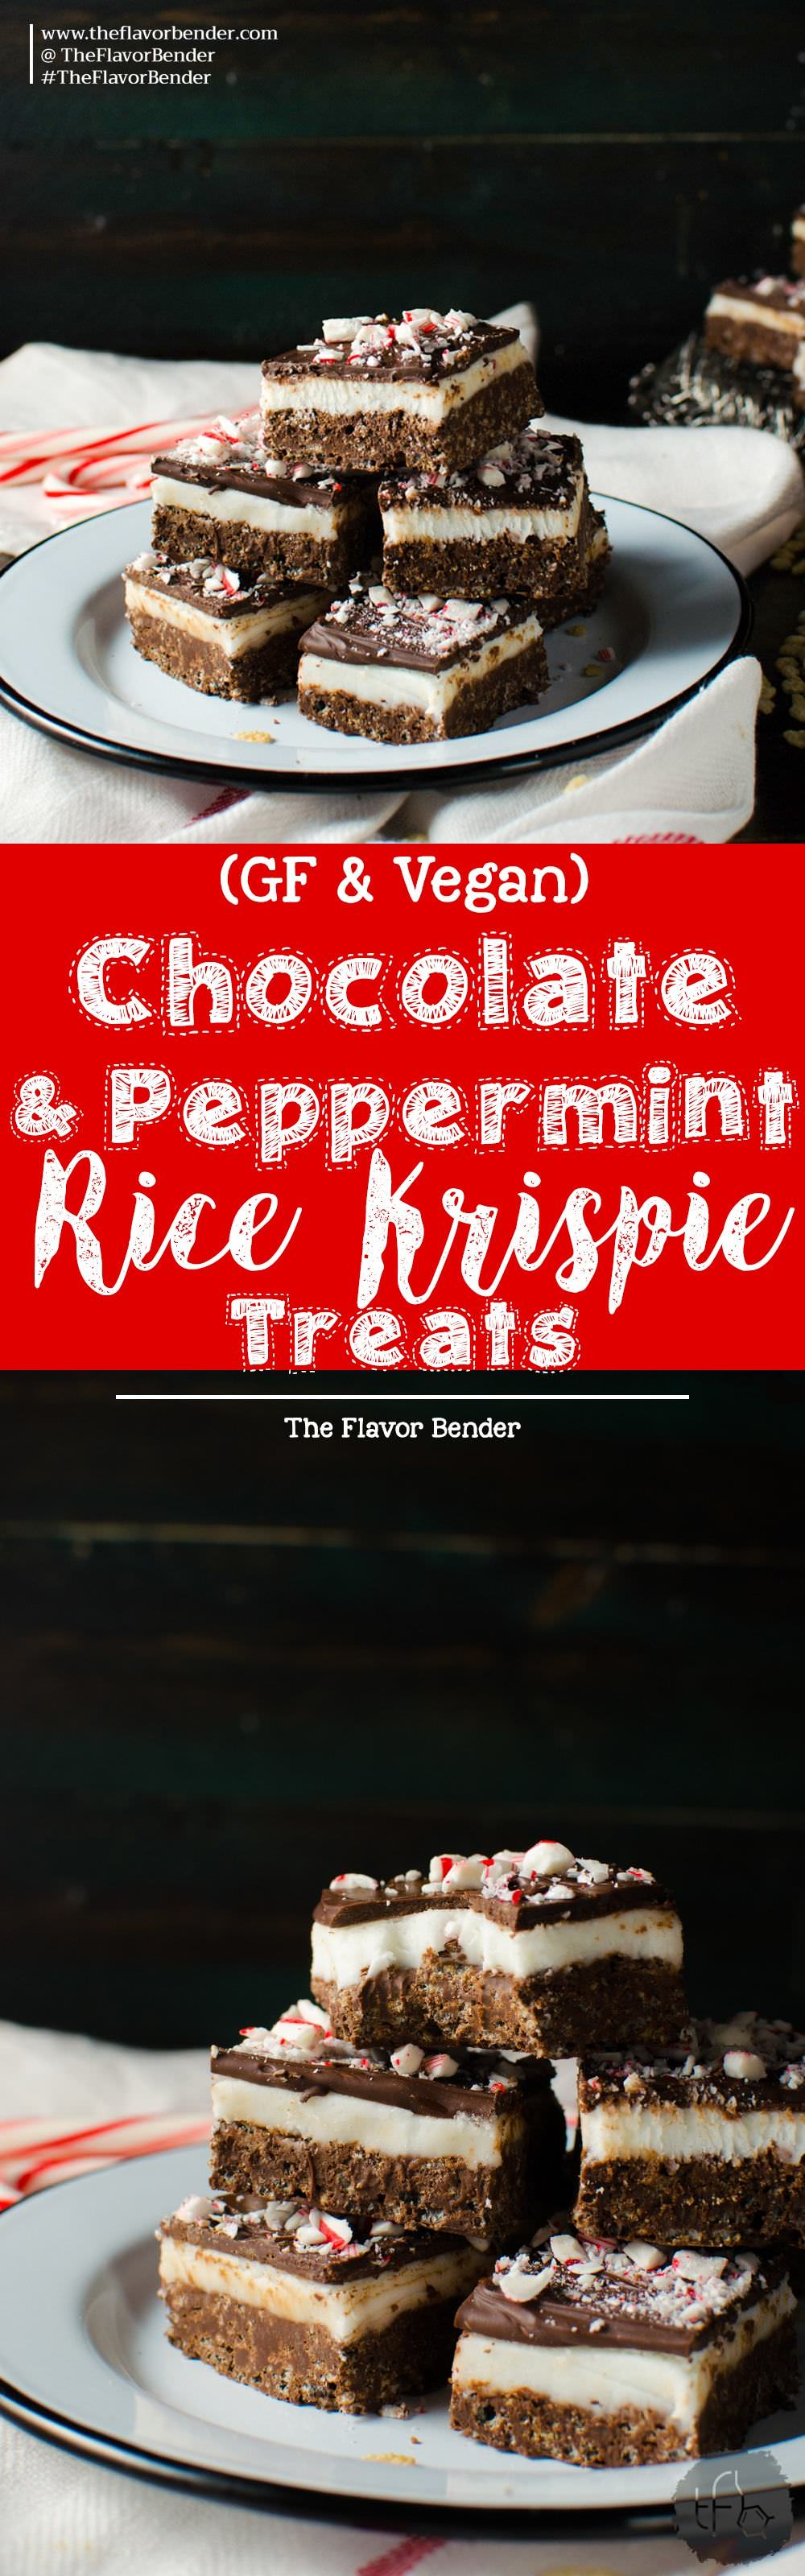 Chocolate Peppermint Rice Krispie Treats (GF, Vegan friendly ...